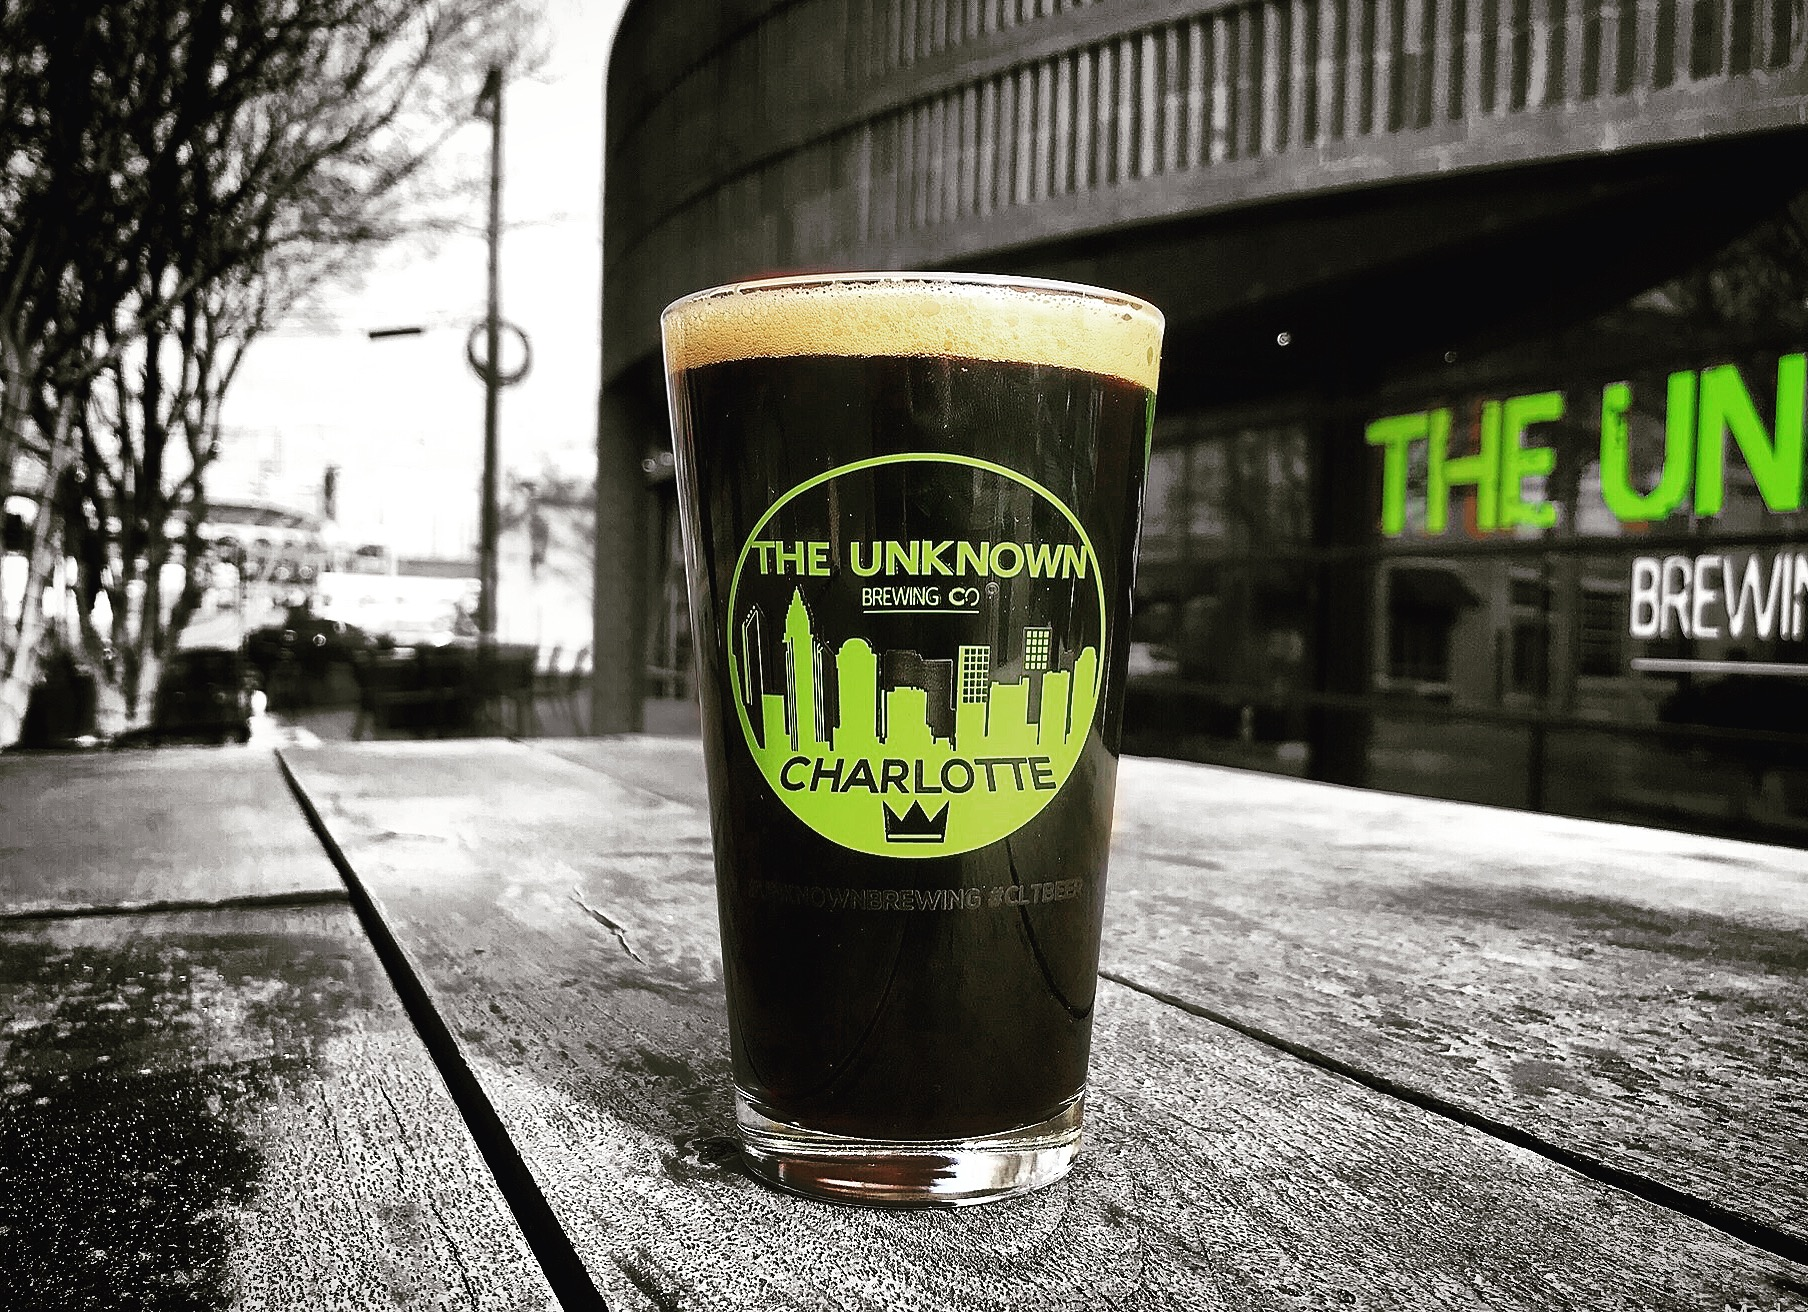 The Unknown Brewing Co